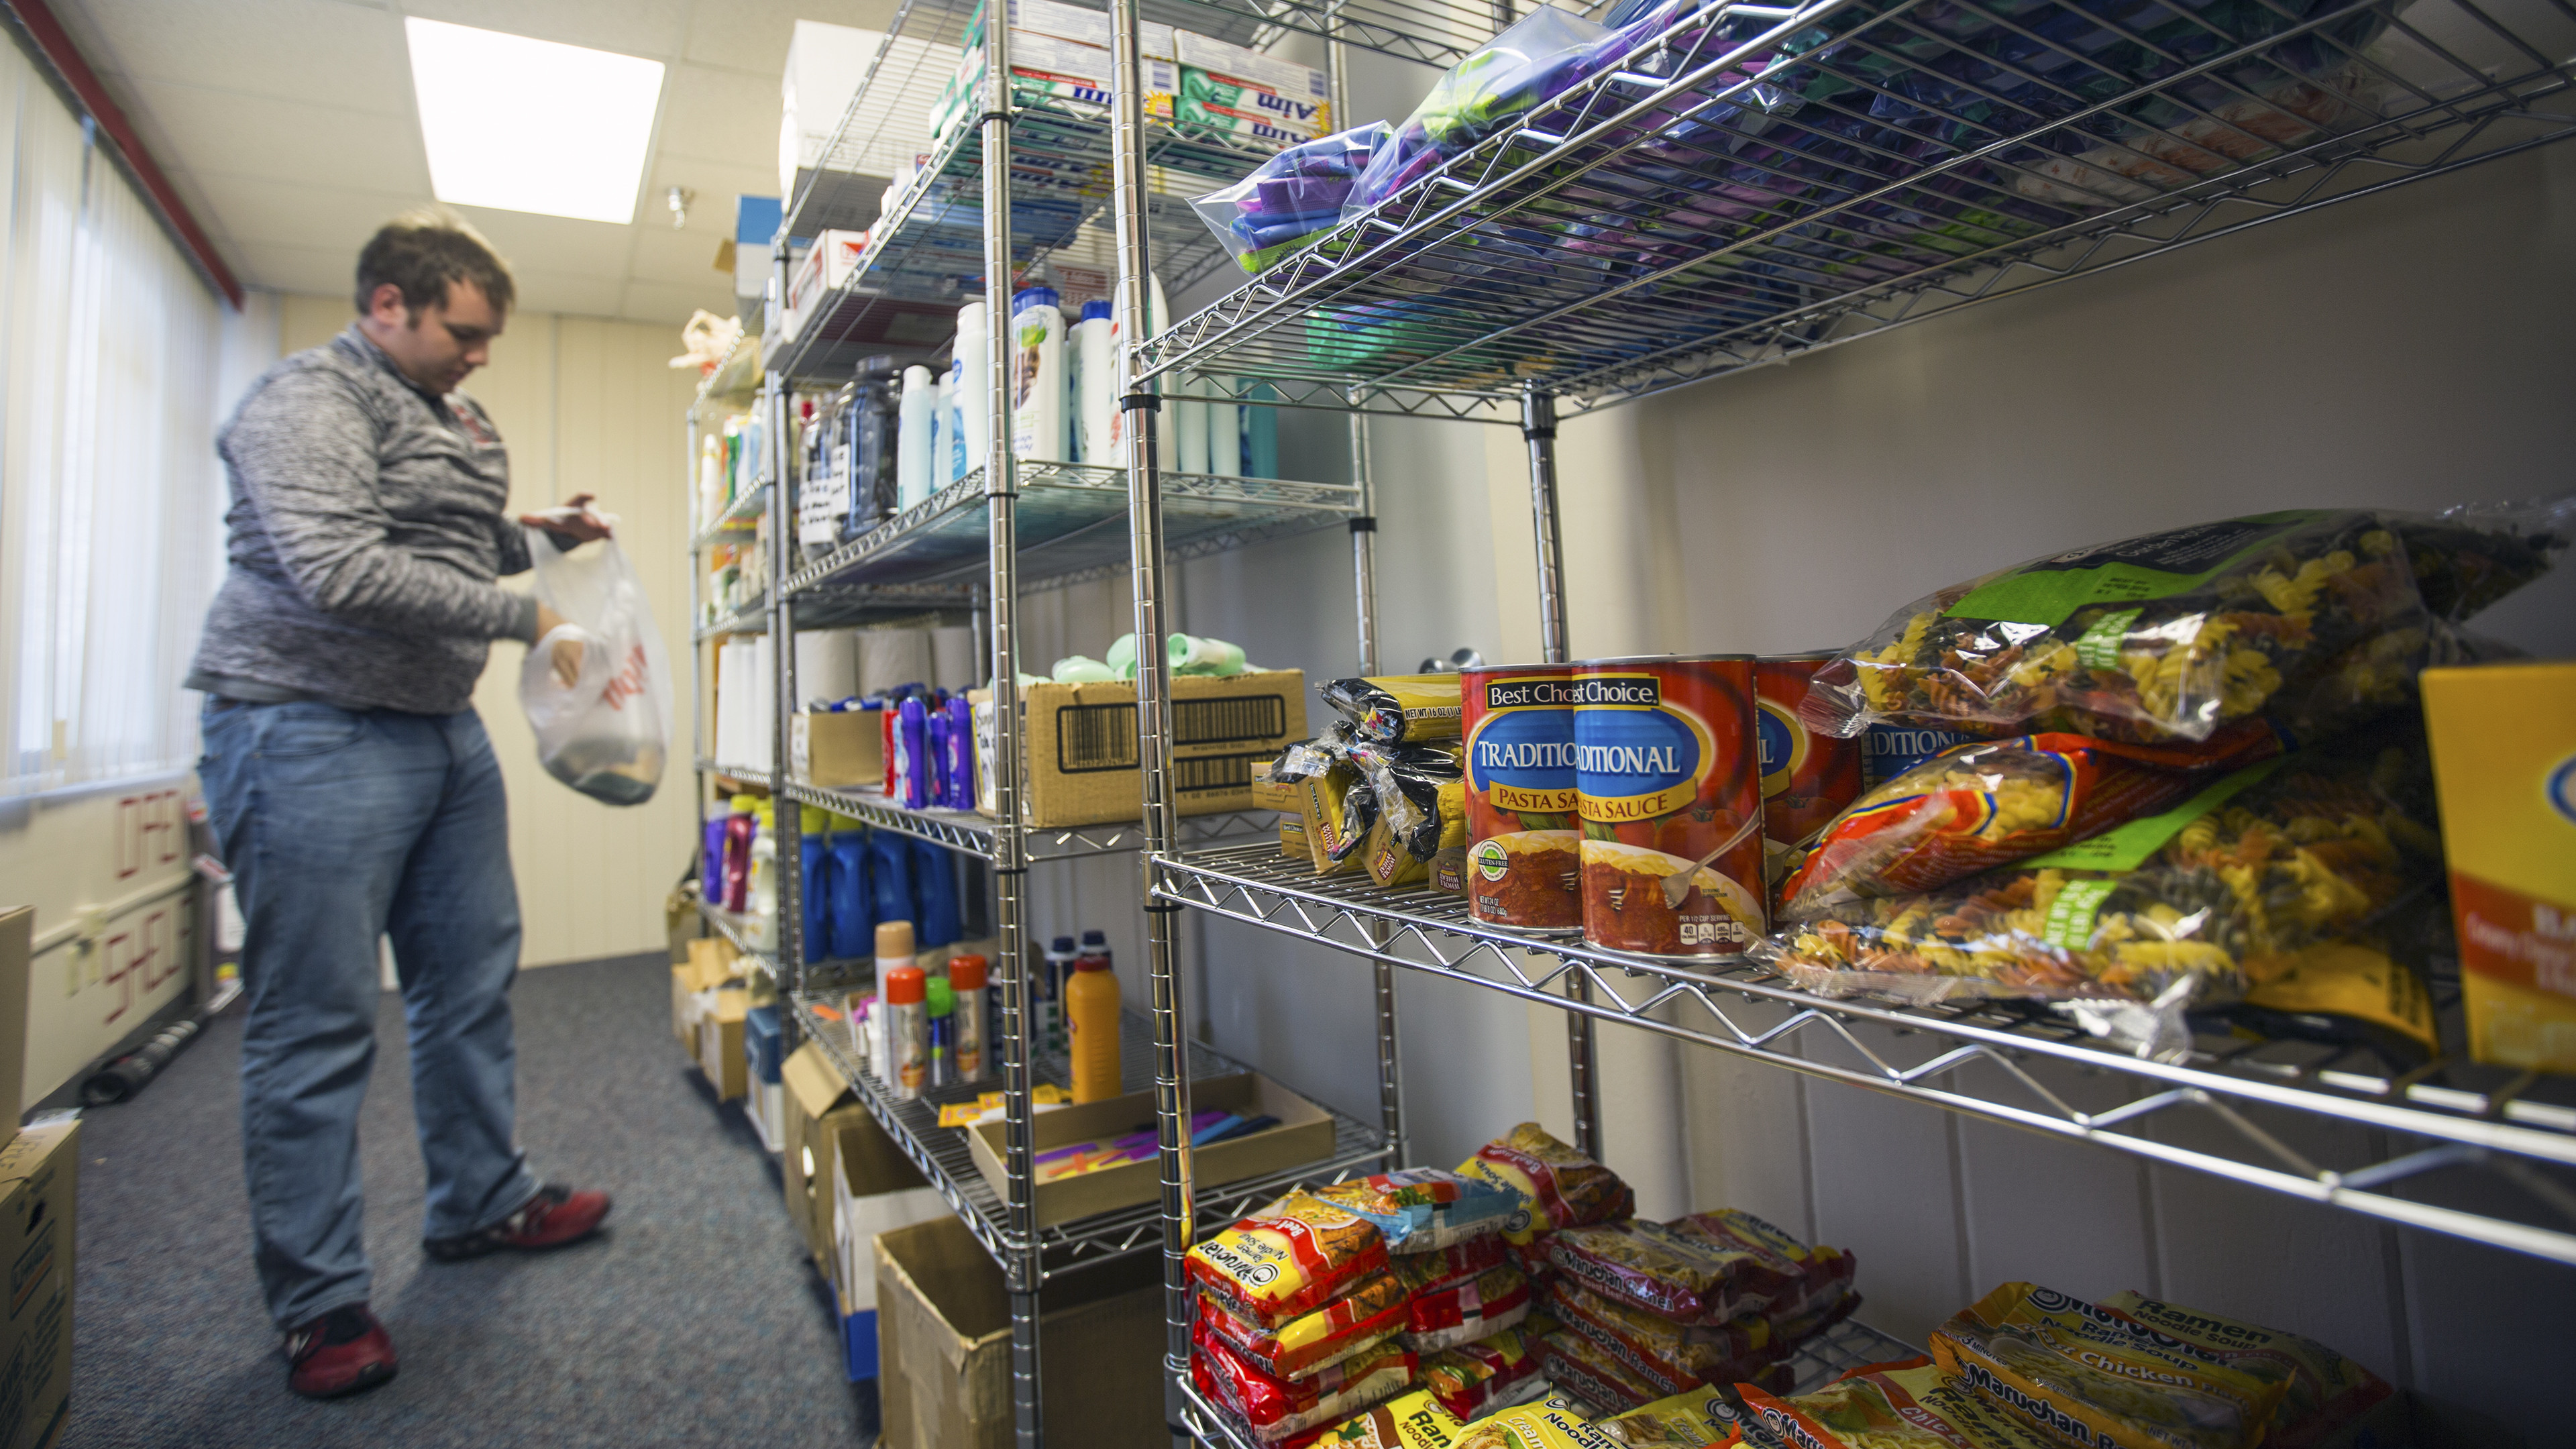 Best ideas about Food Pantry Open Today . Save or Pin Expanded food pantry to open in Nebraska Union Now.